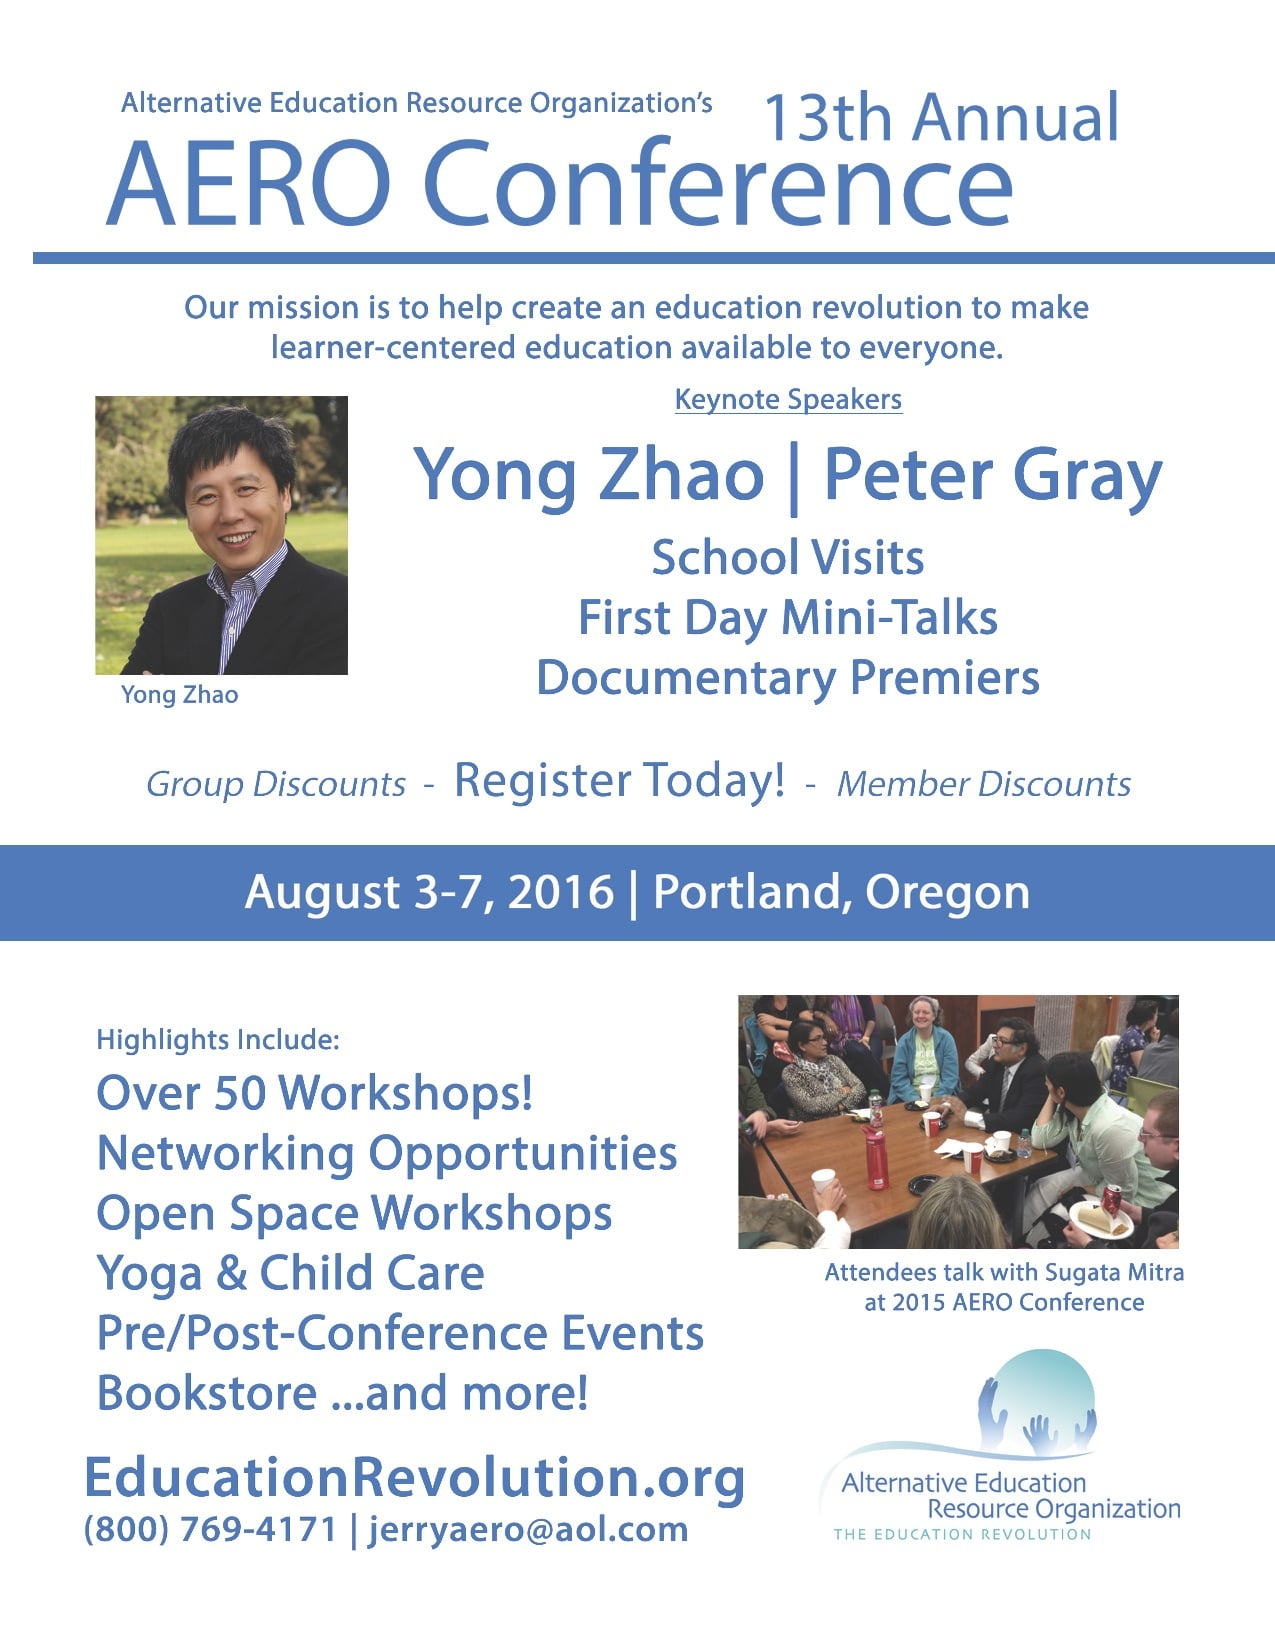 Flyer to promote the 2016 Aero conference